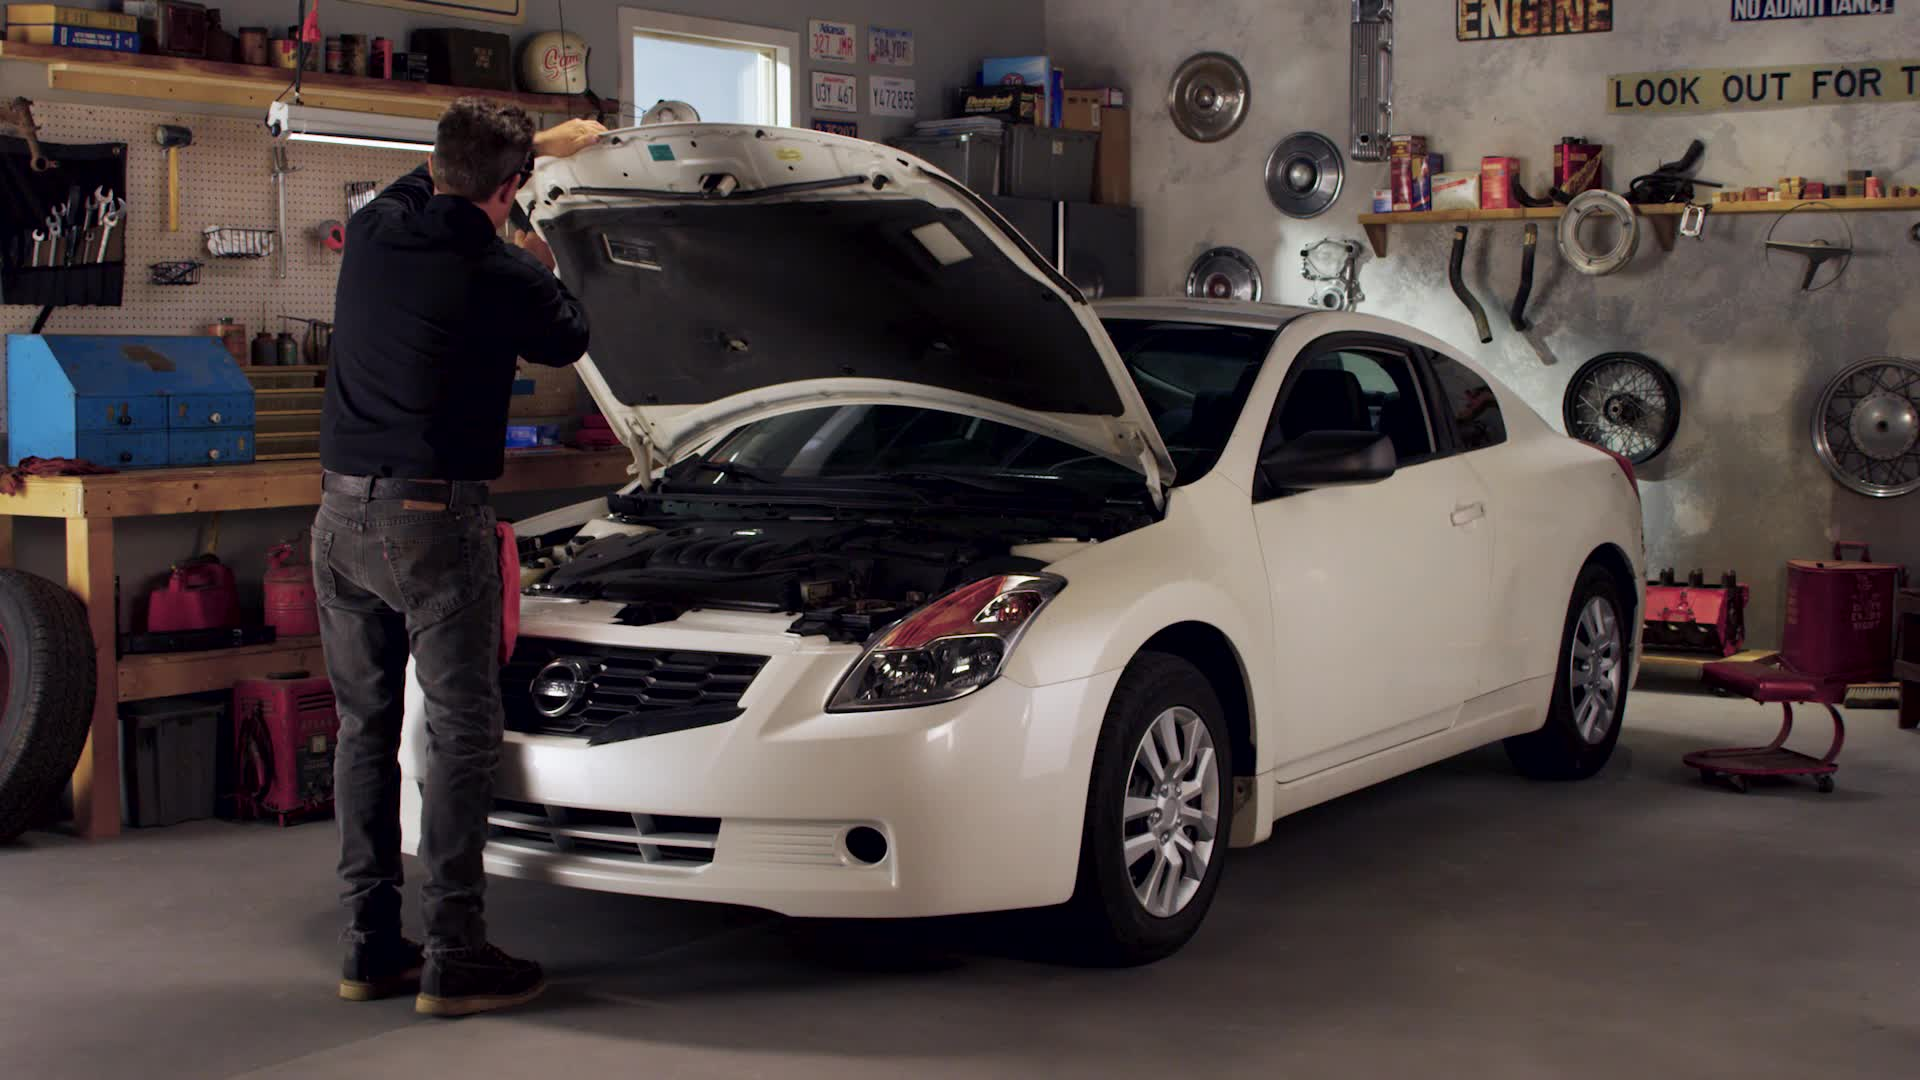 How to Change a Tail Light Bulb - AutoZone How-To Videos